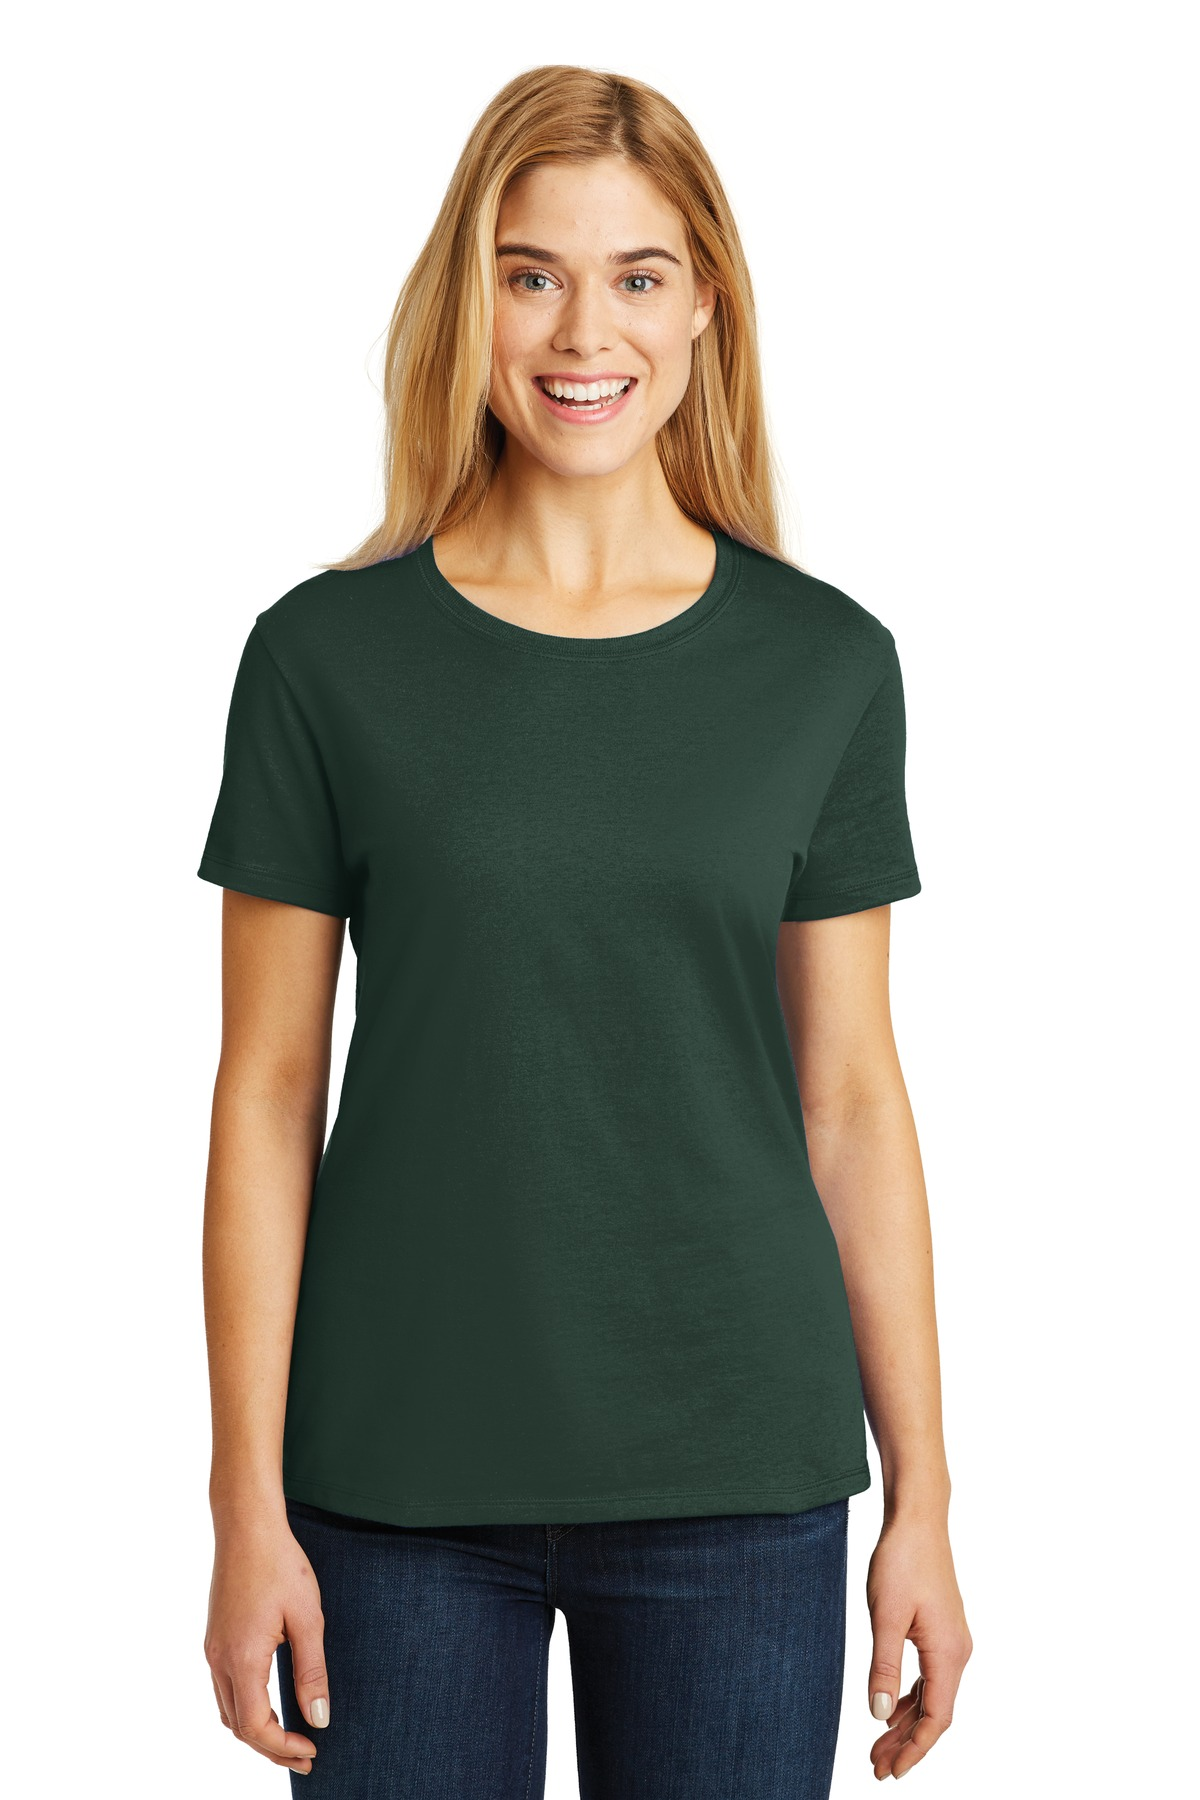 Hanes ®  - Ladies Nano-T ®  Cotton T-Shirt. SL04 - Deep Forest